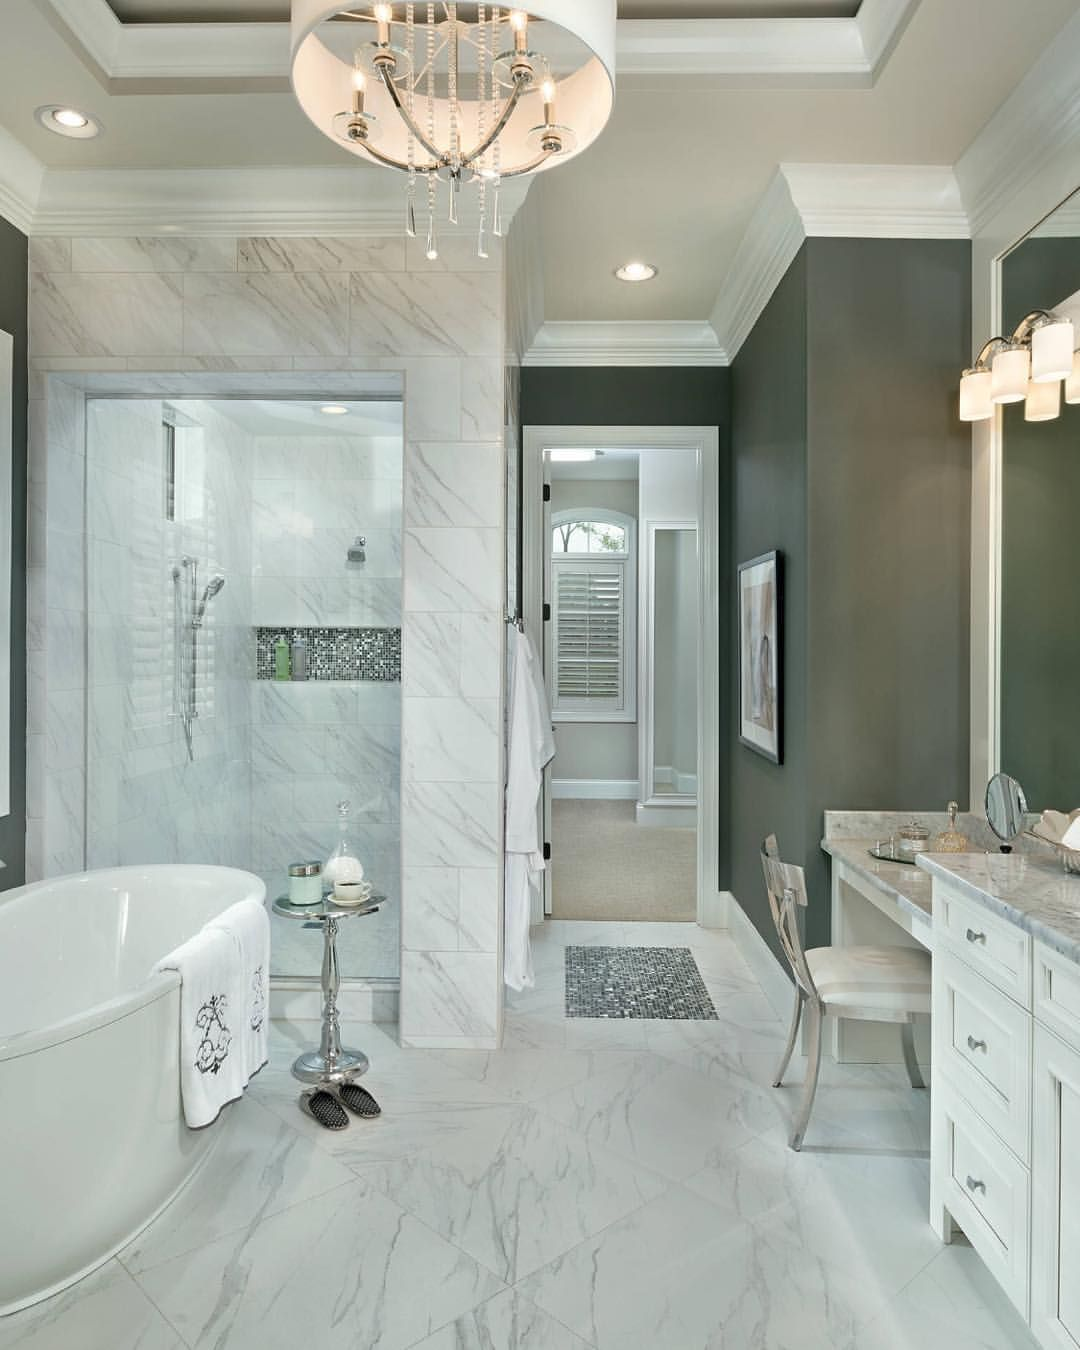 13 Dreamy Bathroom Lighting Ideas: Stunning Bathroom Design. Wall Color Is Grizzle Gray By